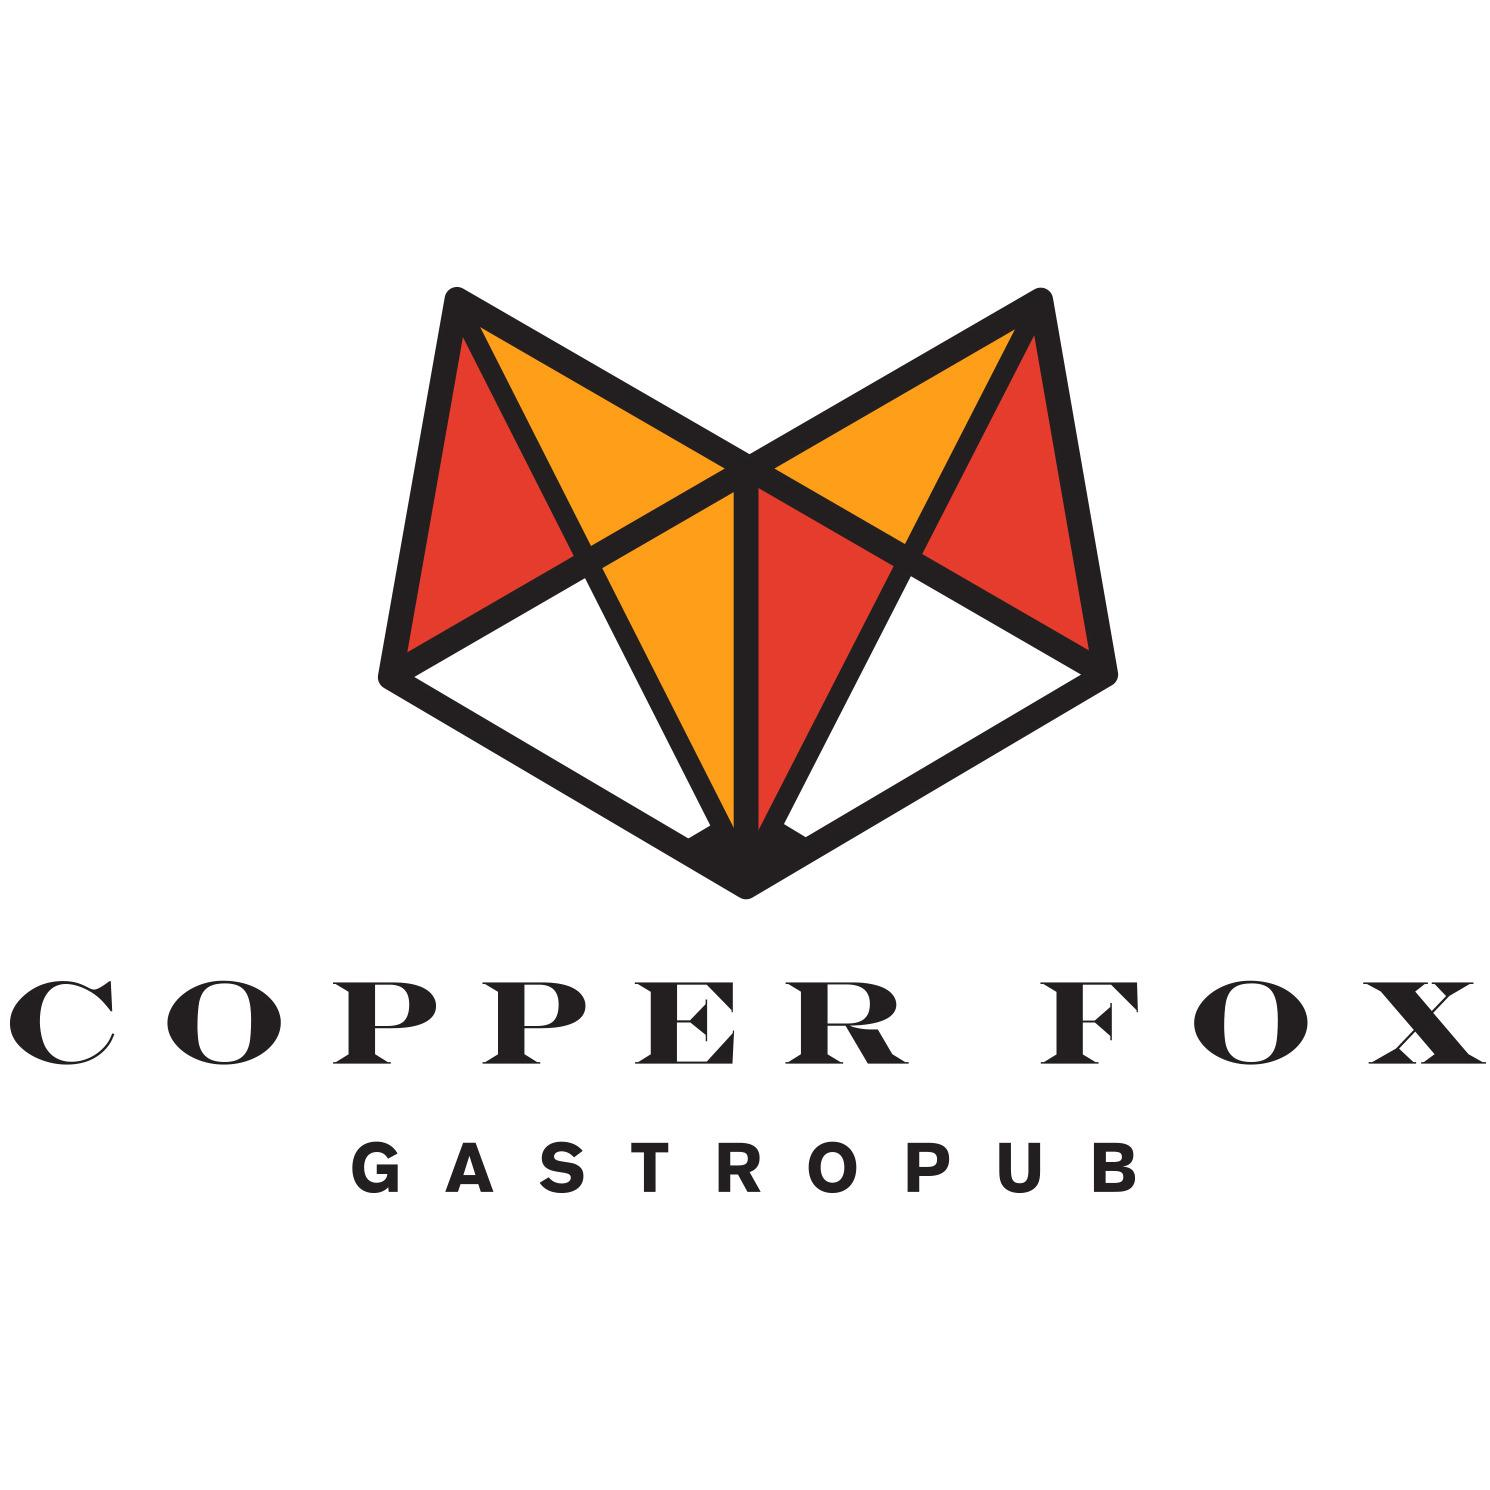 Copper Fox Gastropub